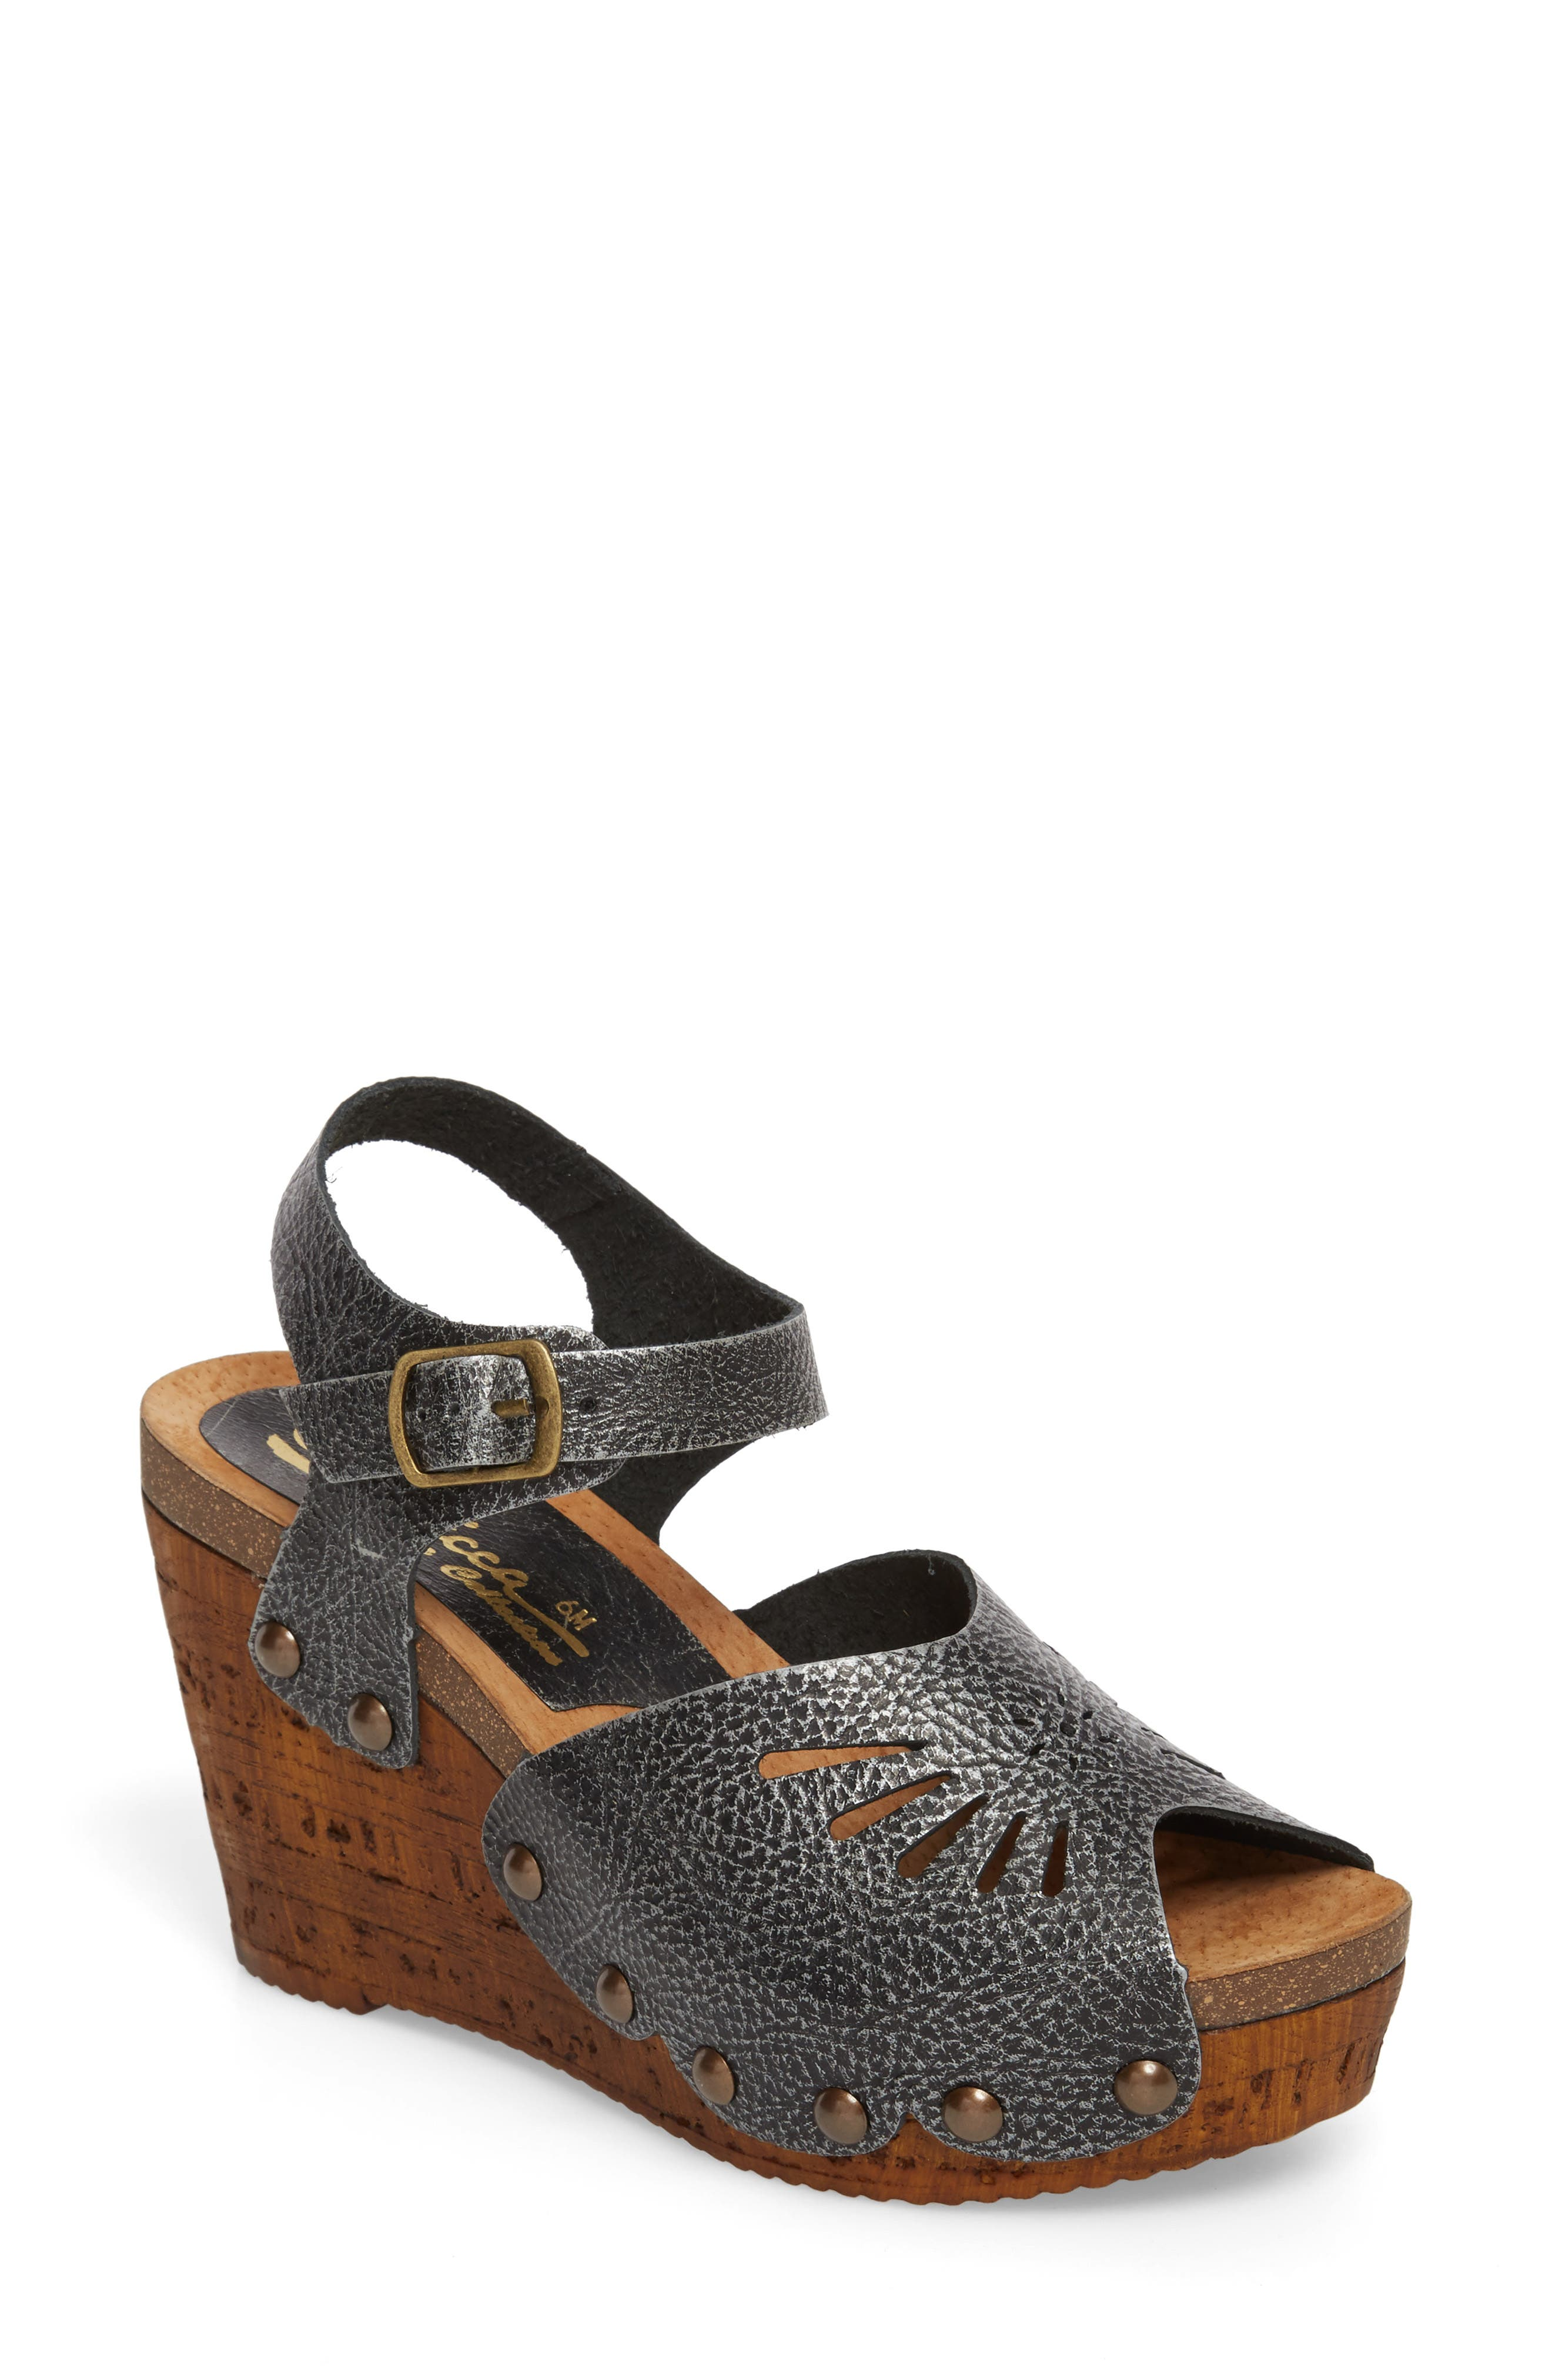 Langsa Wedge Sandal,                             Main thumbnail 1, color,